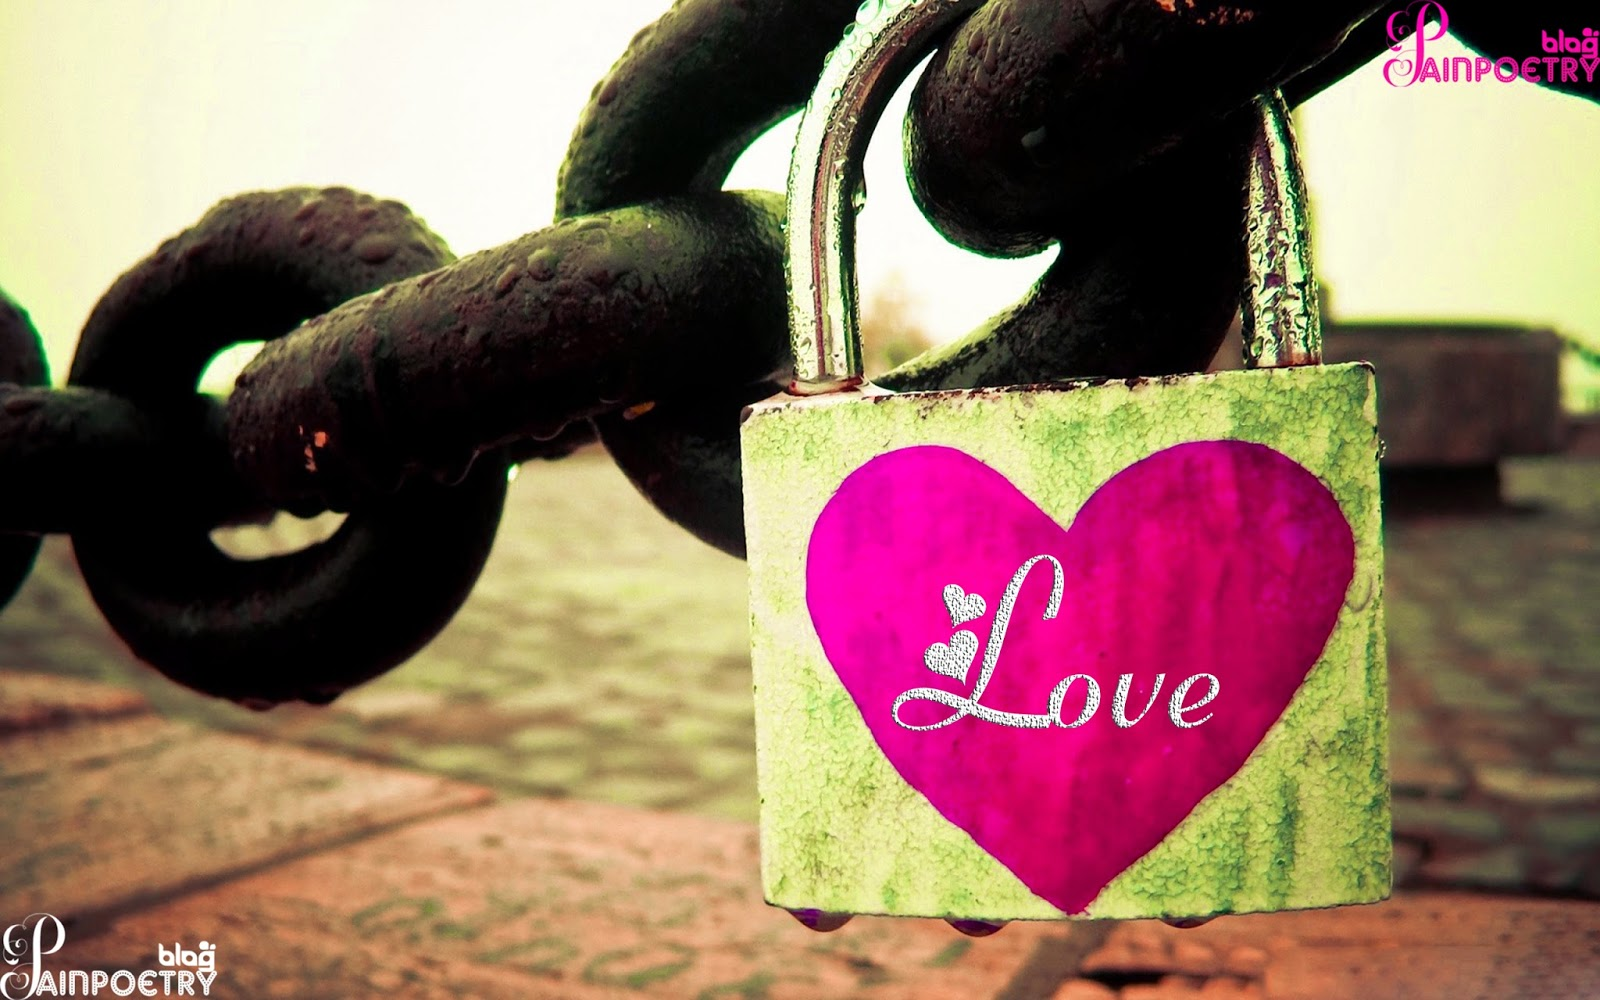 Love-Wises-Image-Wallpaper-With-Love-Heart-Lock-And-Attach-Chane-HD